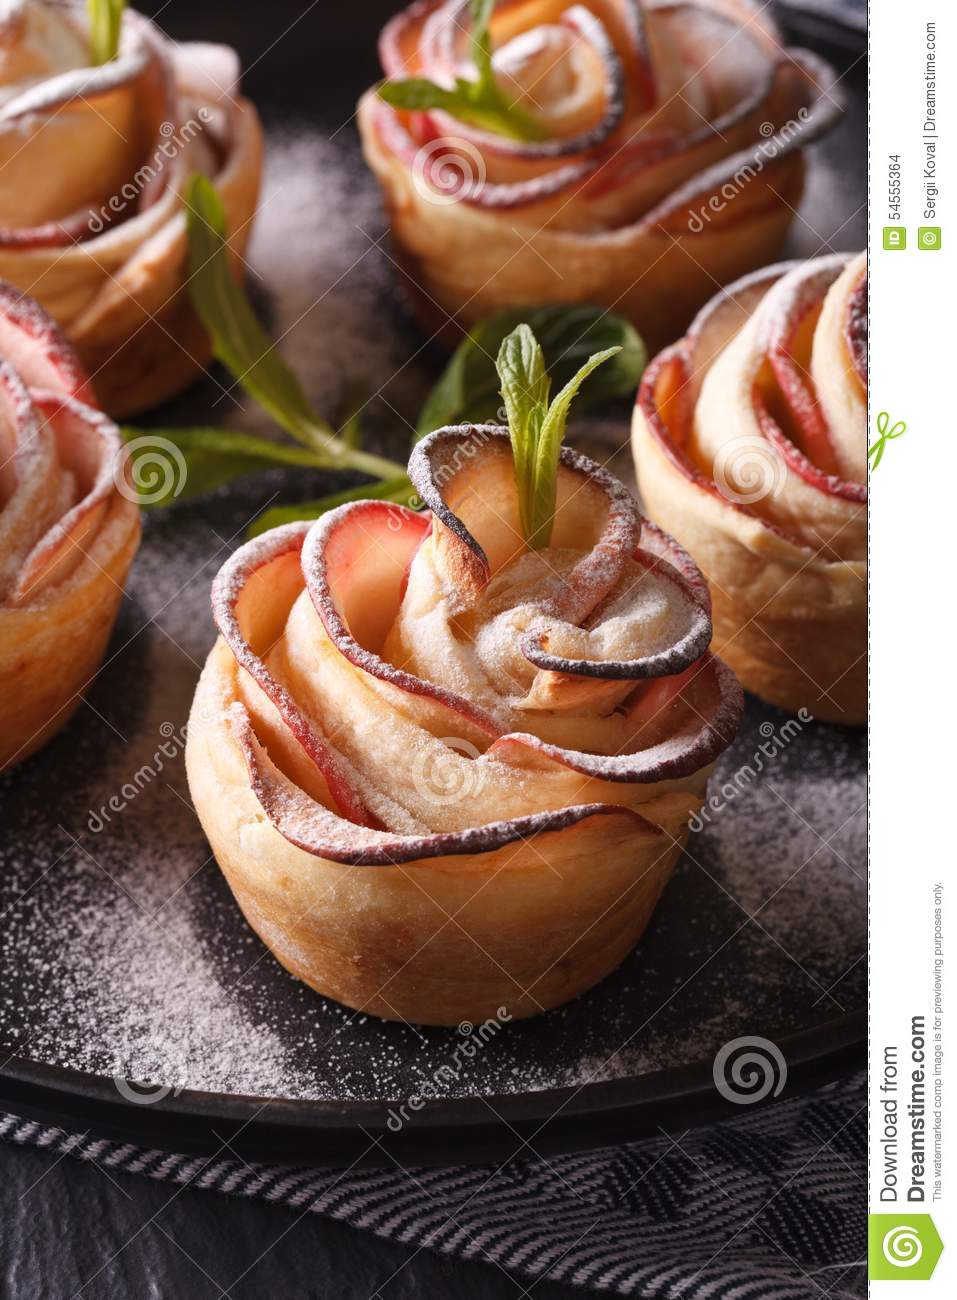 healthy food apple pie in the form of roses macro vertical stock photo image 54555364. Black Bedroom Furniture Sets. Home Design Ideas